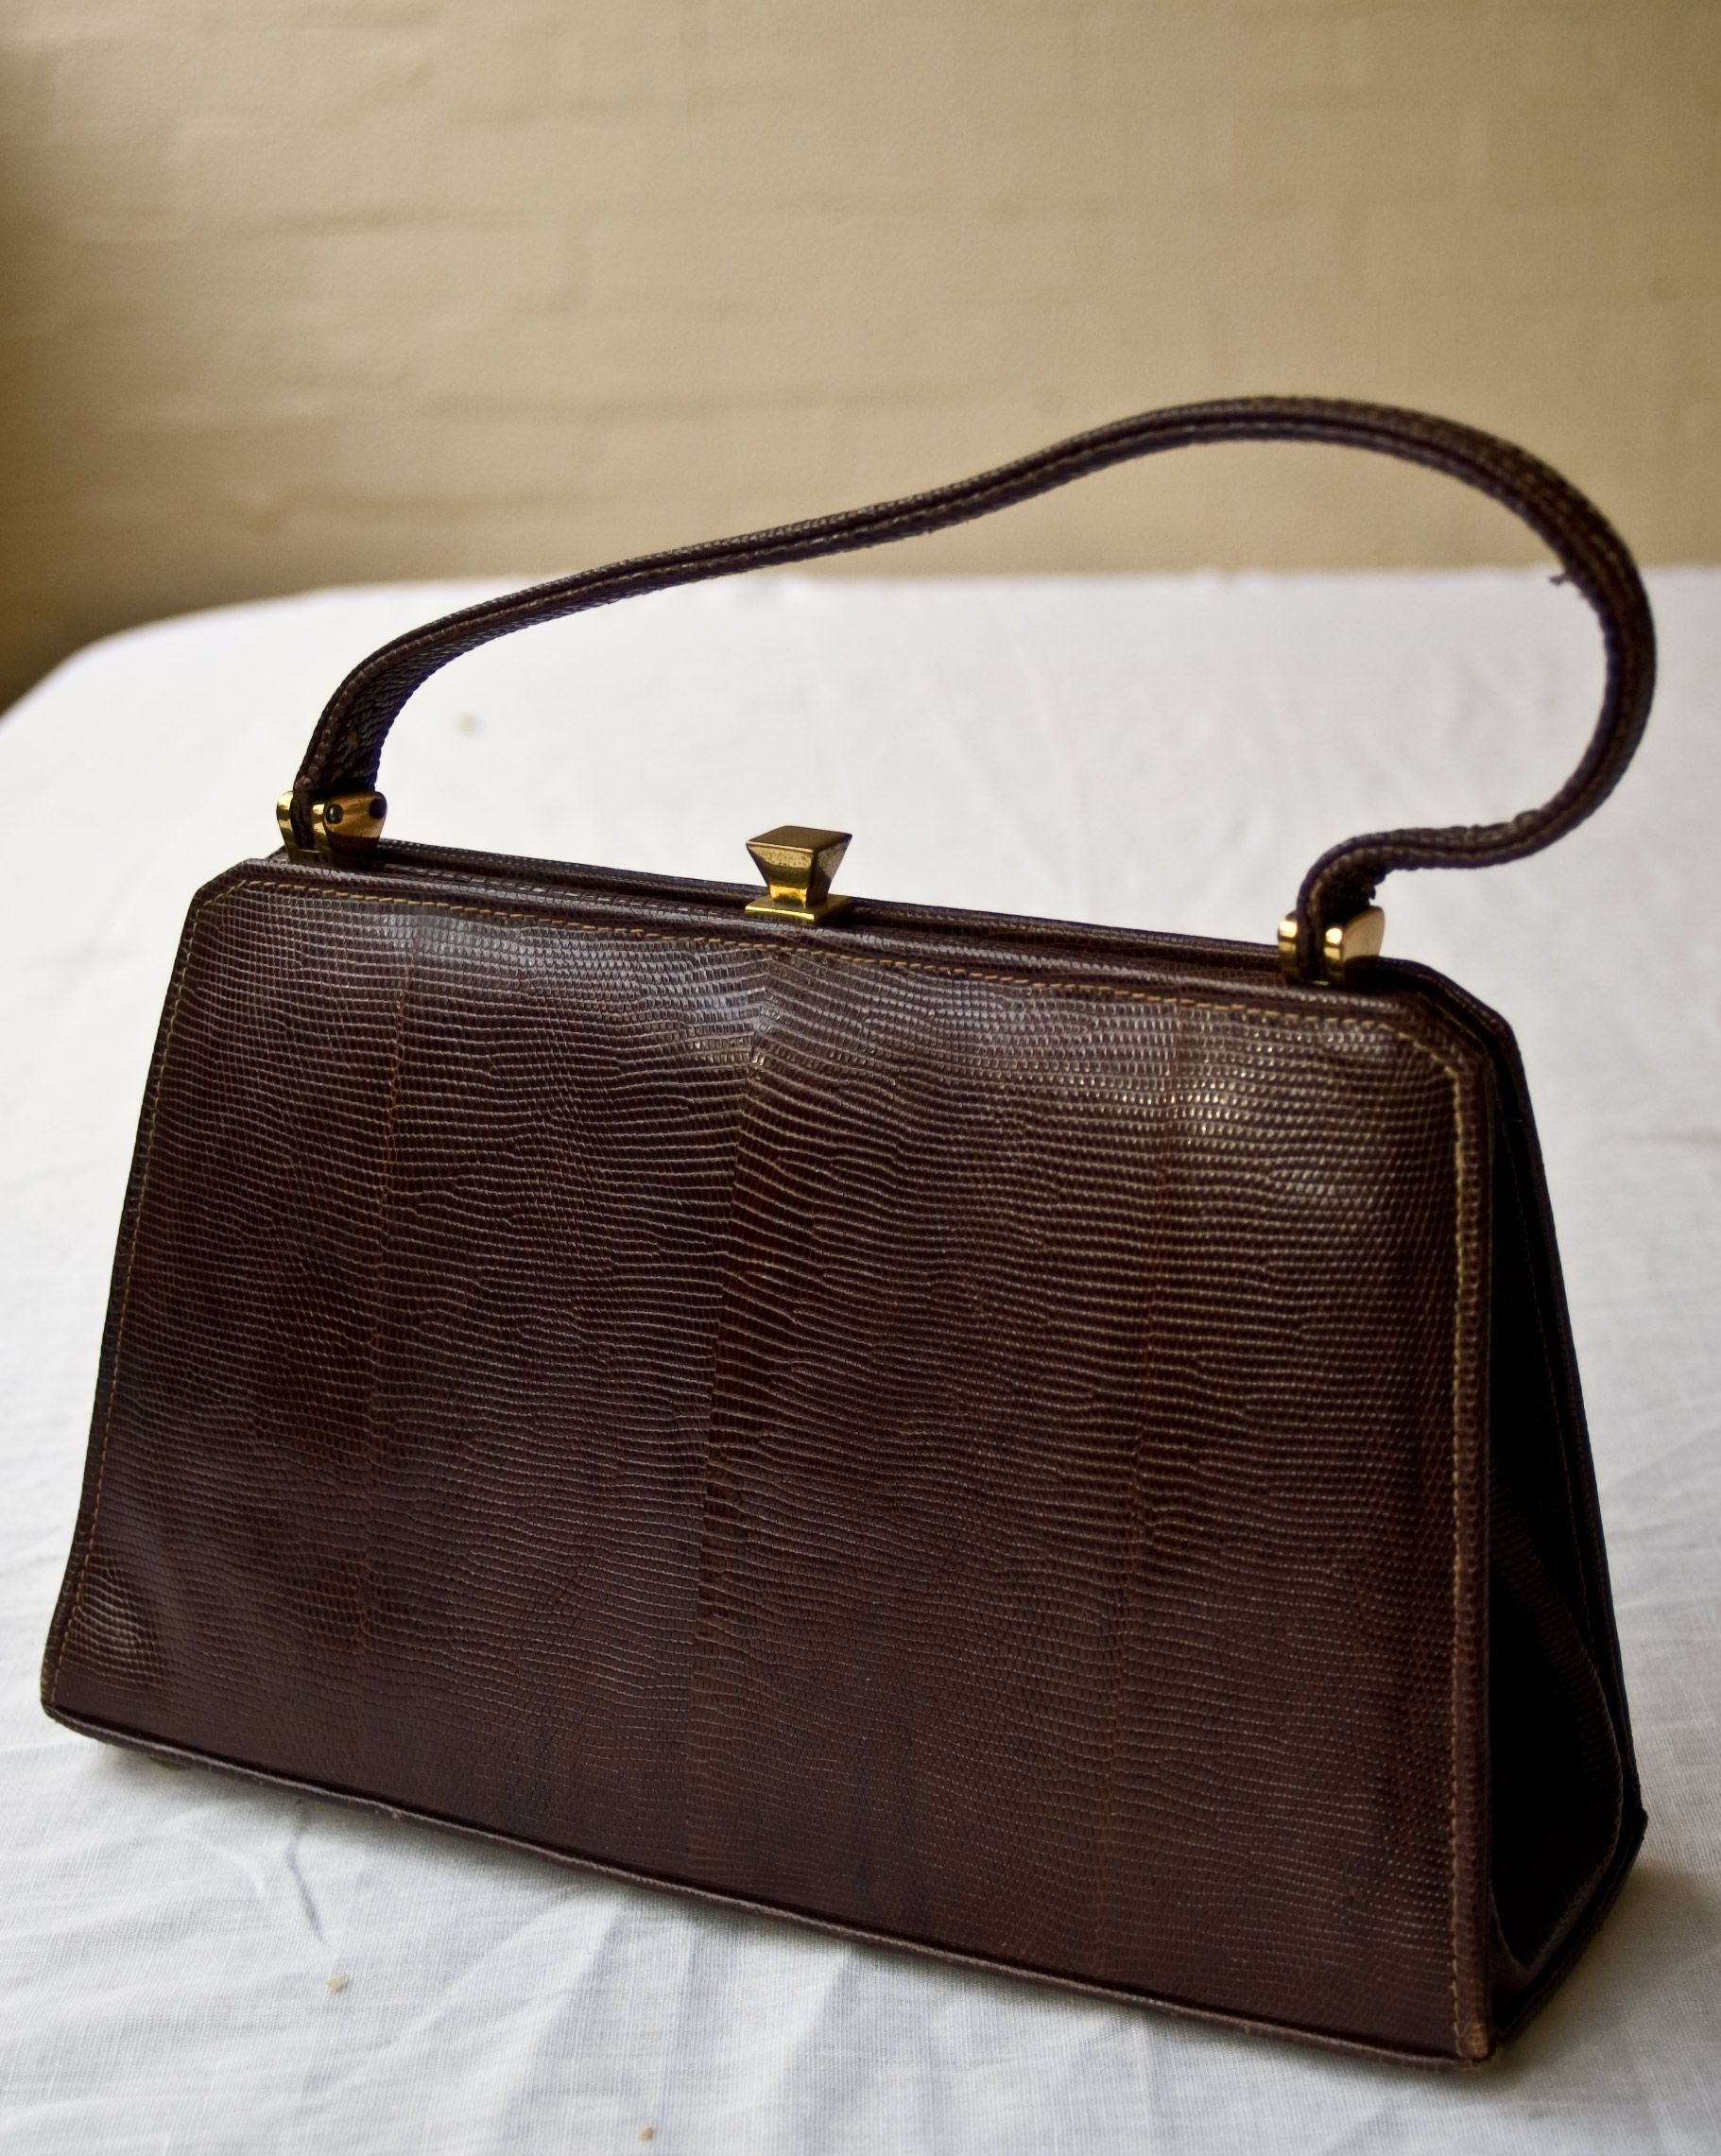 1940s Handbag A Has To Own One If She Is Vintage